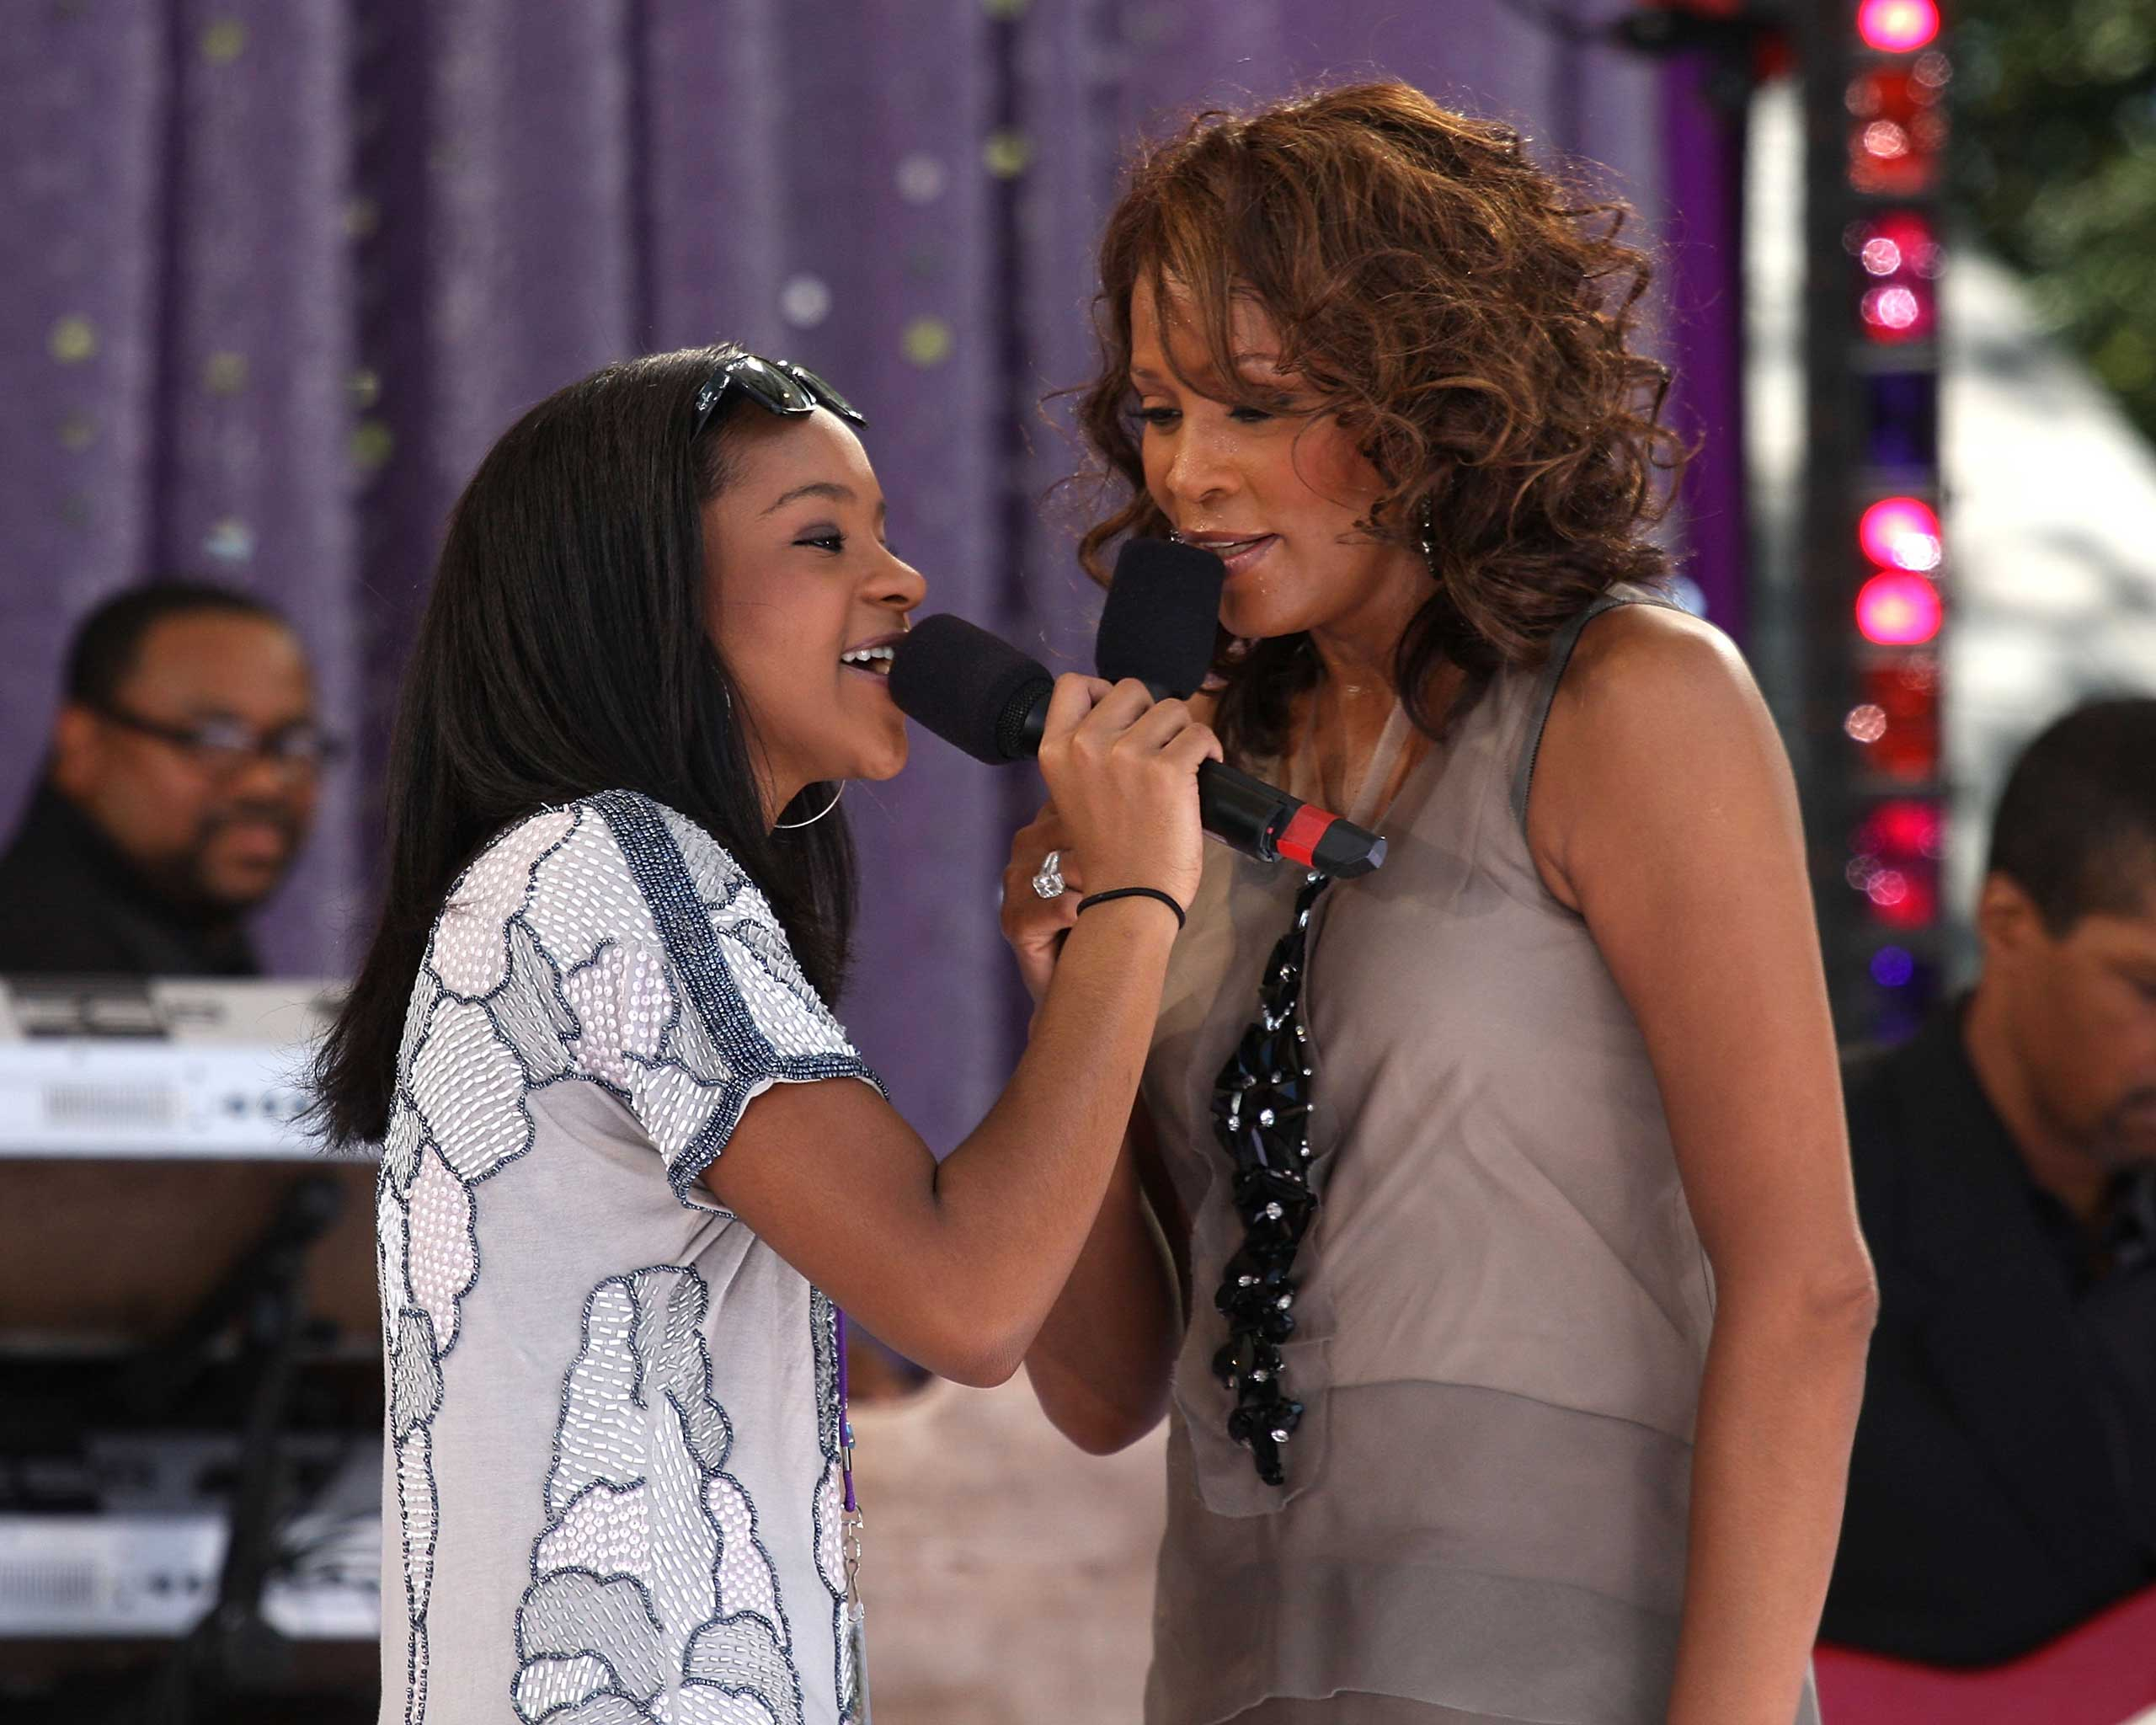 Bobbi Kristina Brown and Whitney Houston perform in Central Park on Sept. 1, 2009 in New York City.